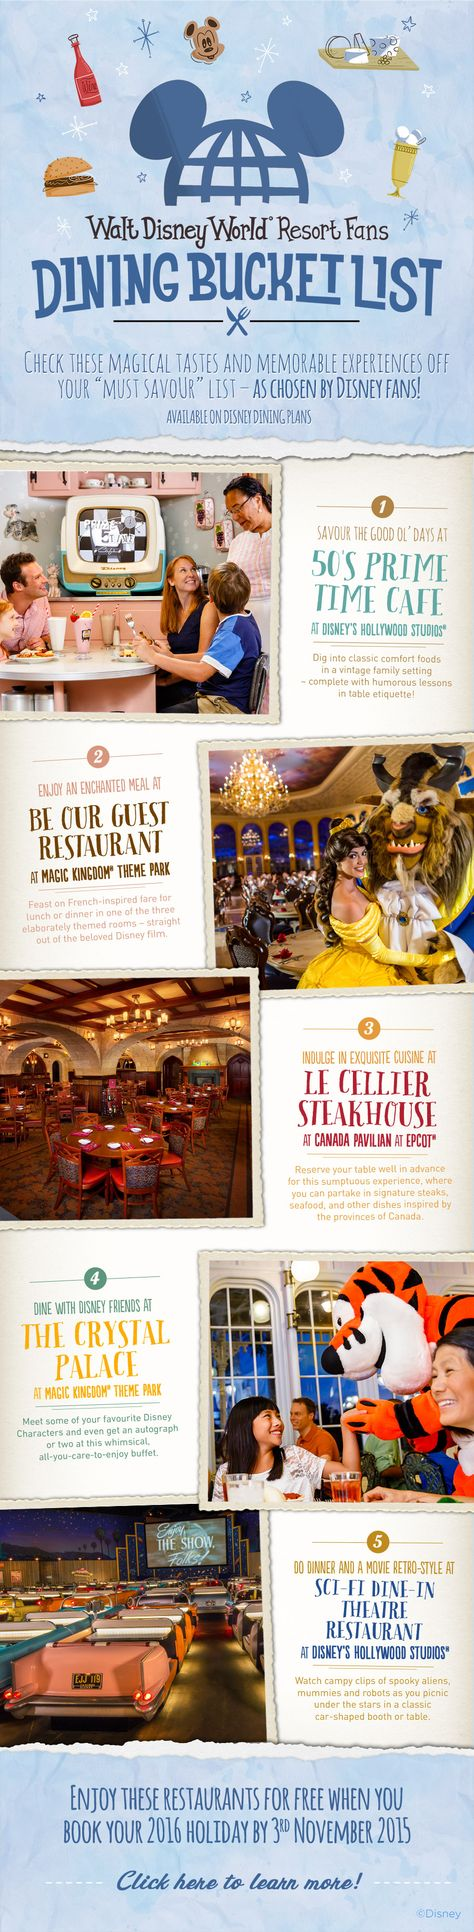 Check out fan-favorite dining locations at Walt Disney World! From Disney's Hollywood Studios to Magic Kingdom Park, there's a dining option for everyone in your family!